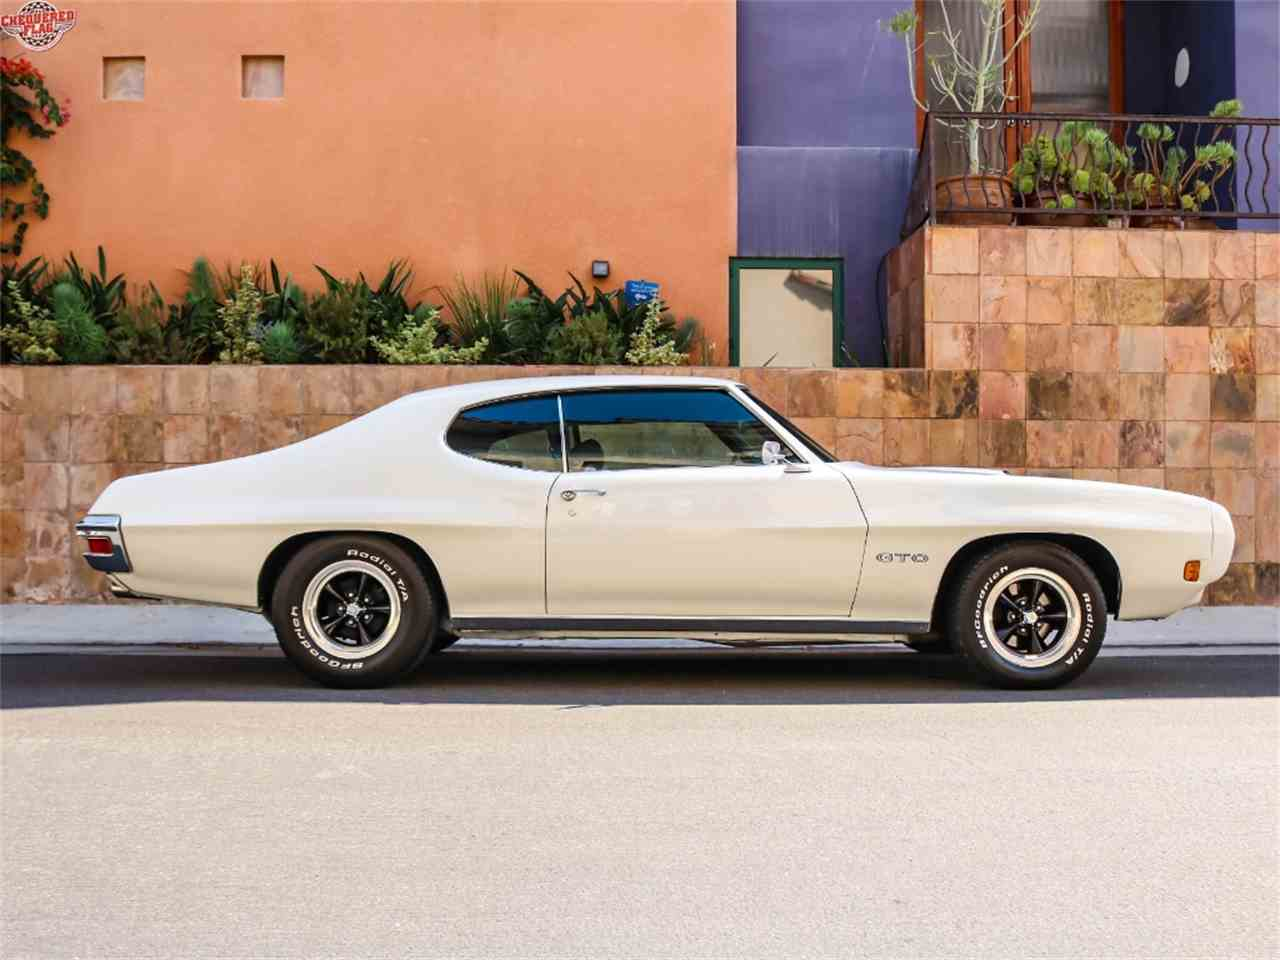 Large Picture of Classic 1970 GTO - $38,500.00 - LTS2